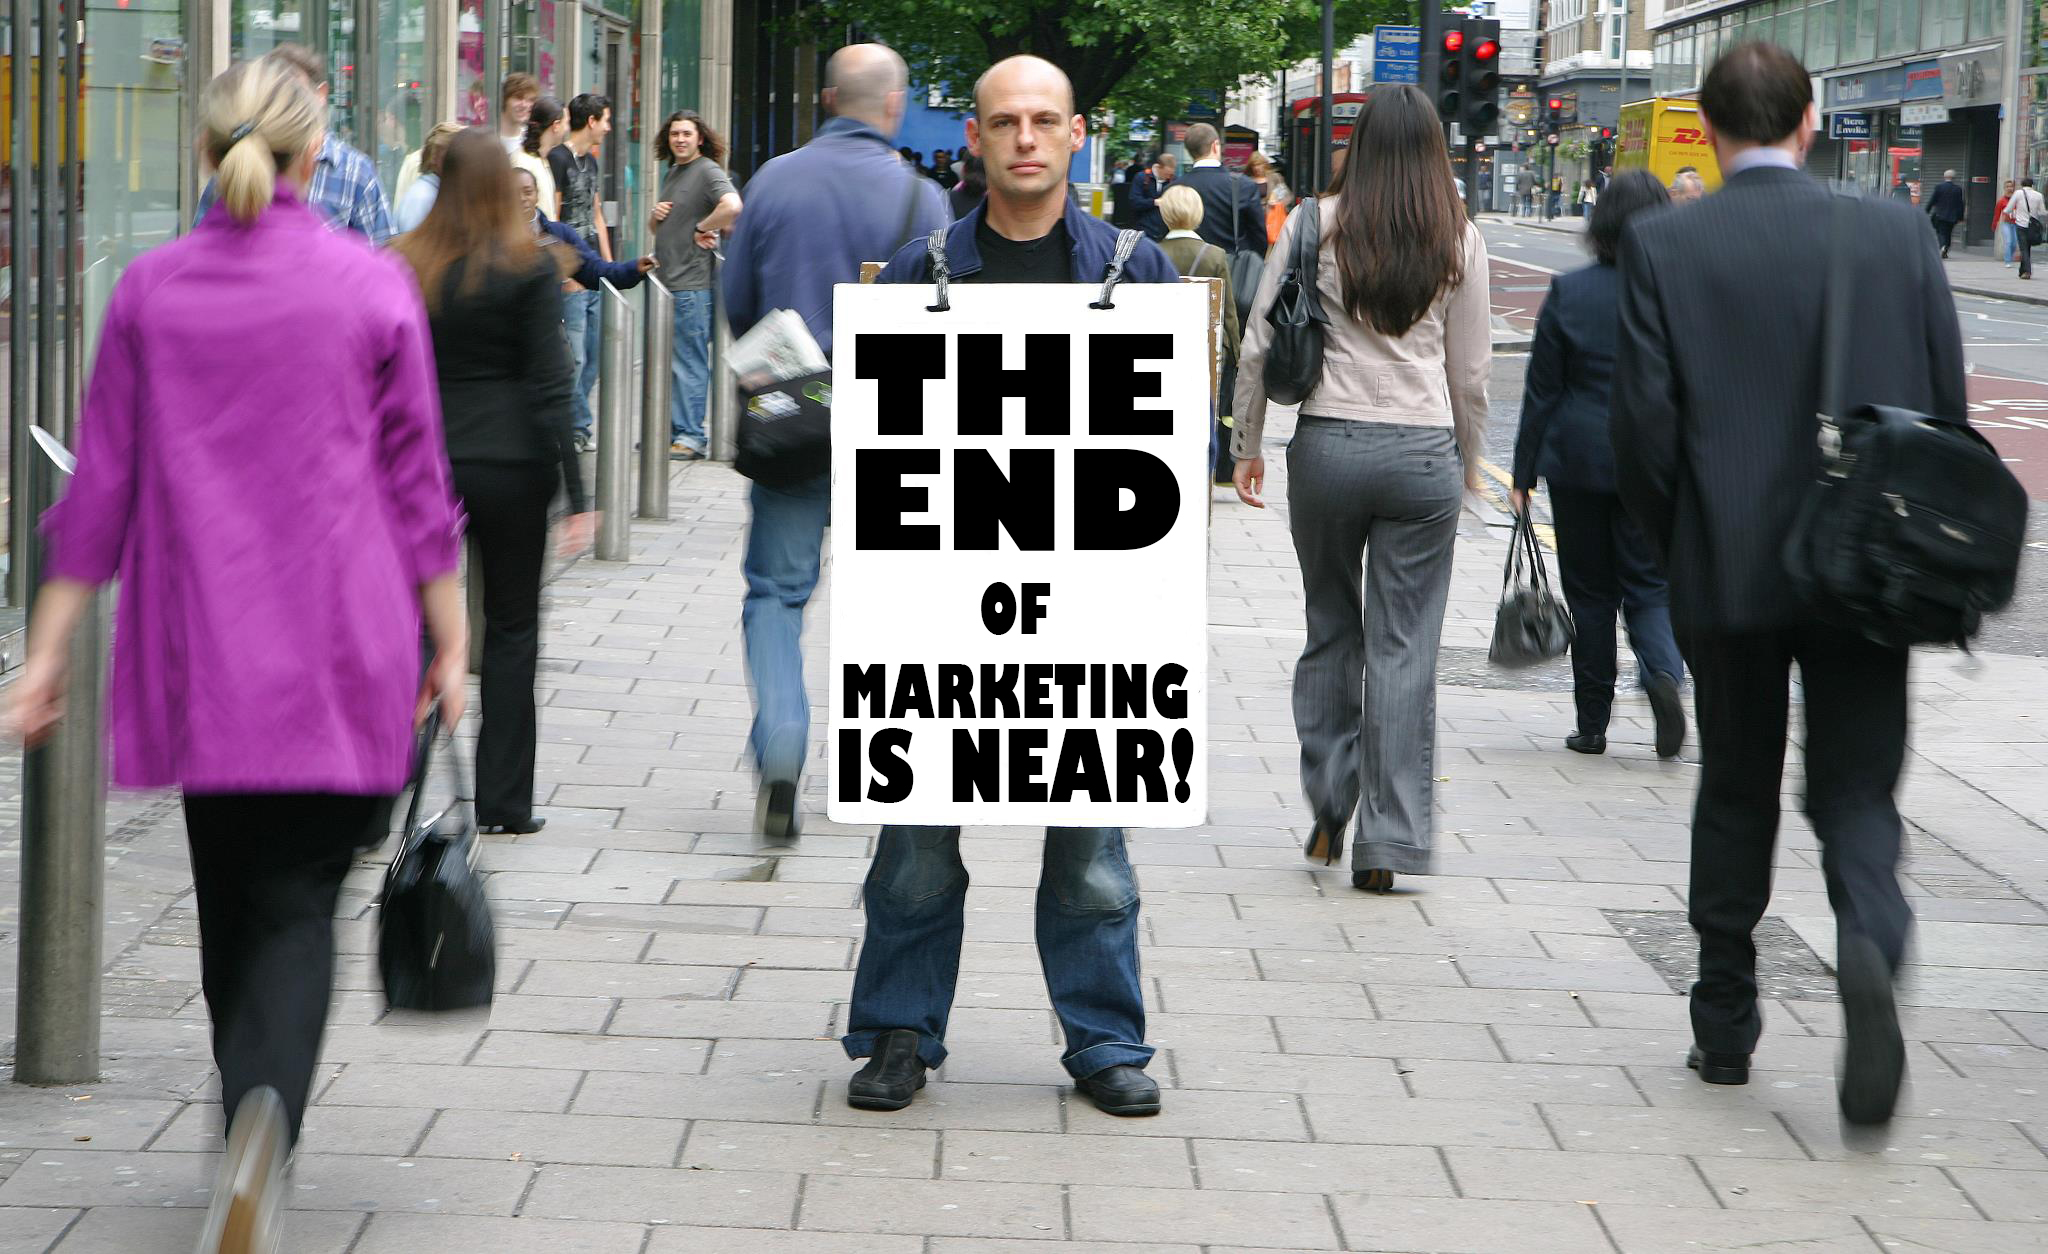 The End of Marketing is Near